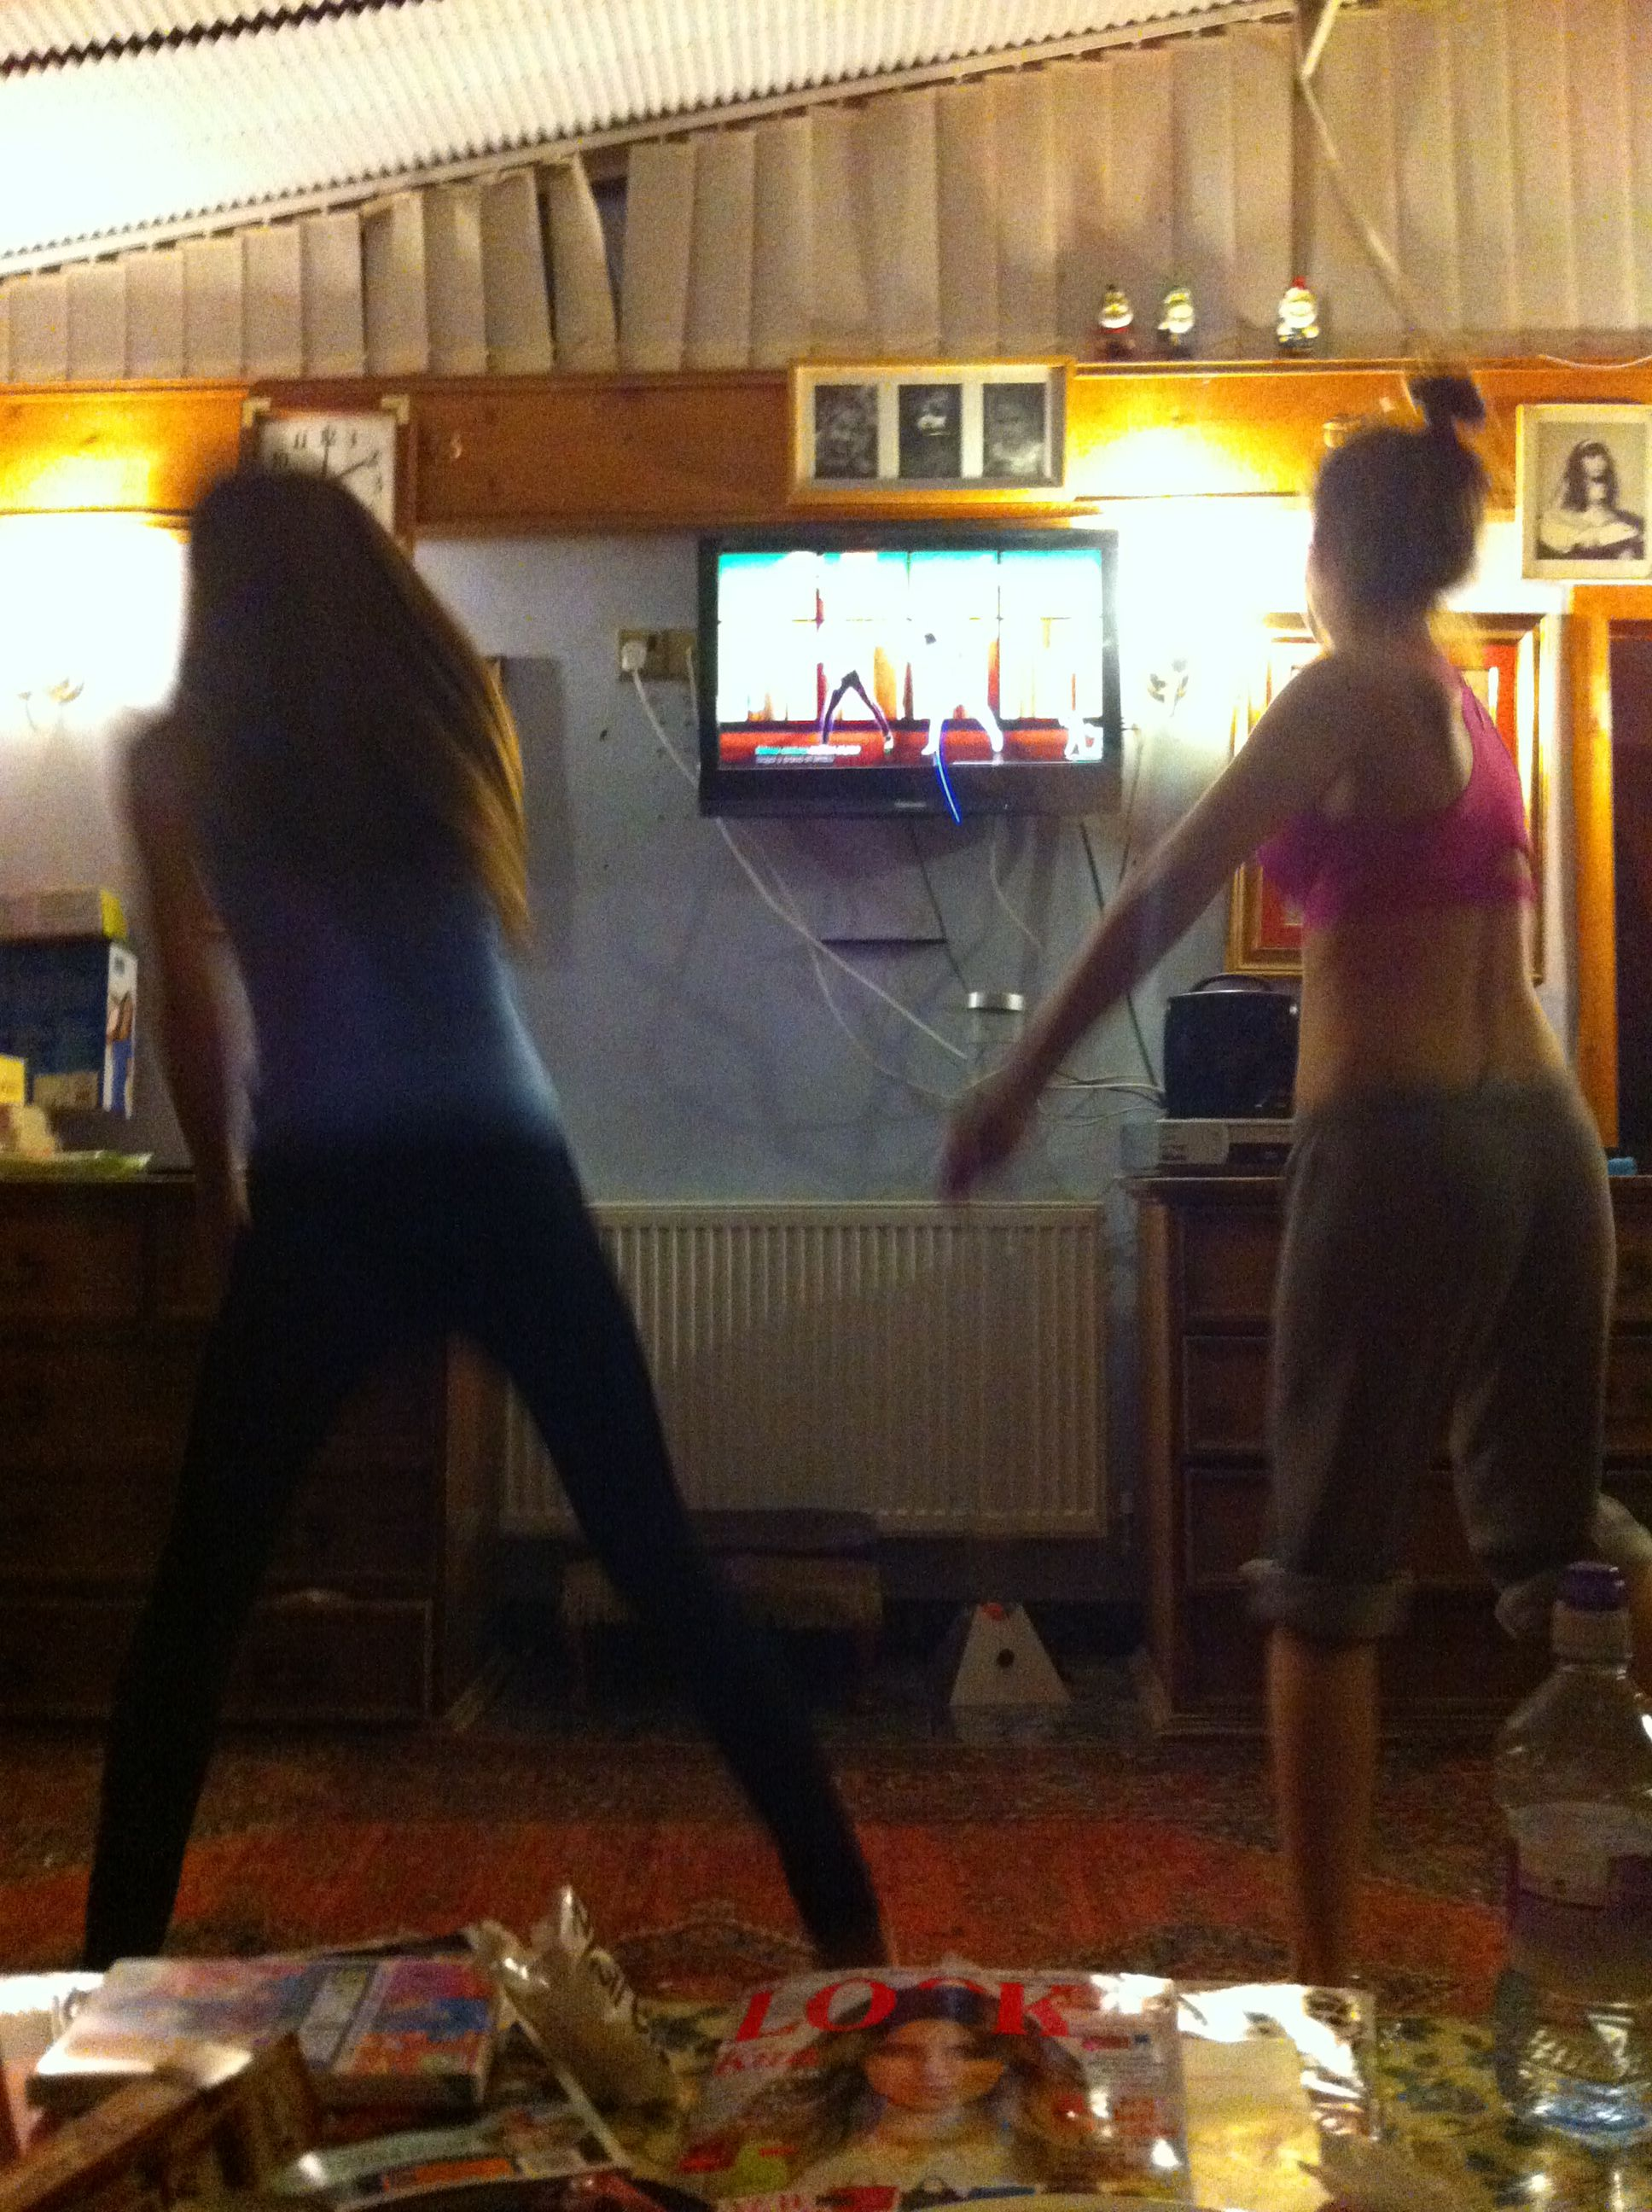 Just dance workout - tal&kelly